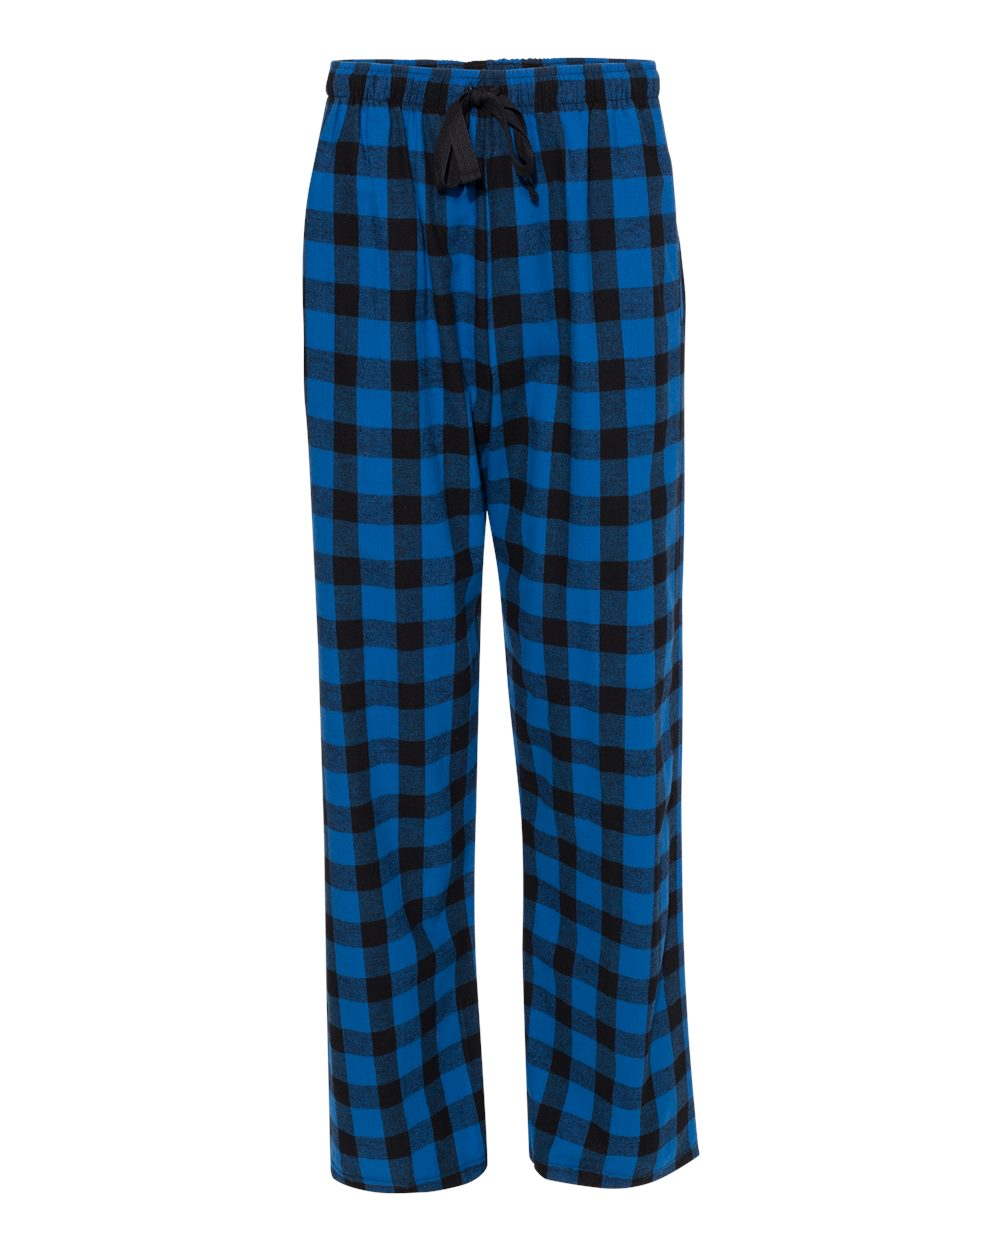 Boxercraft-Unisex-Flannel-Pants-With-Pockets-Pajama-Pants-F20-up-to-2XL thumbnail 48